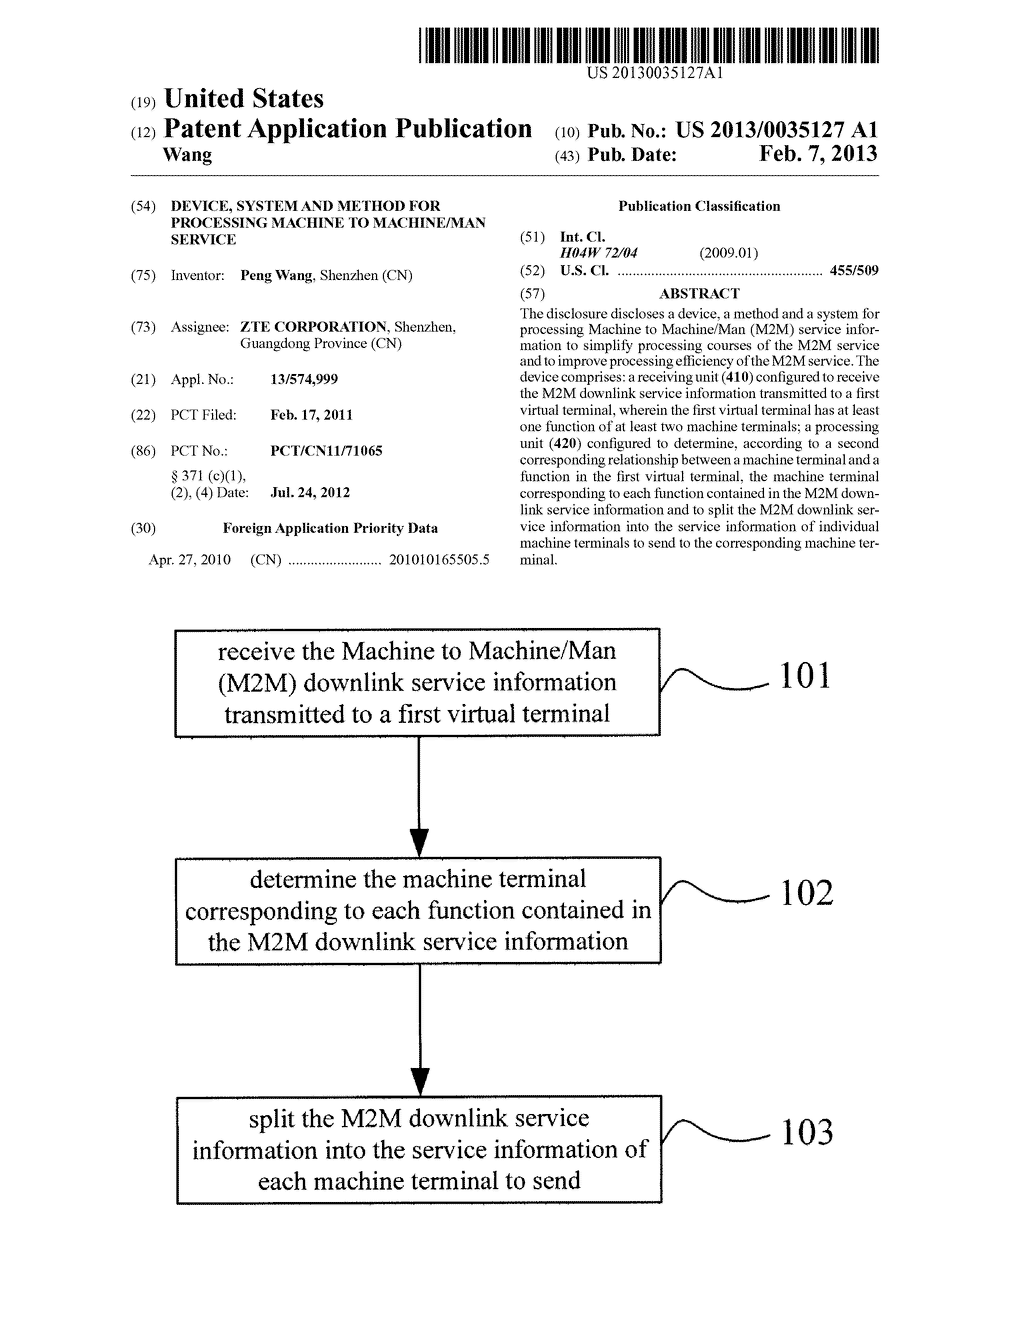 DEVICE, SYSTEM AND METHOD FOR PROCESSING MACHINE TO MACHINE/MAN SERVICE - diagram, schematic, and image 01